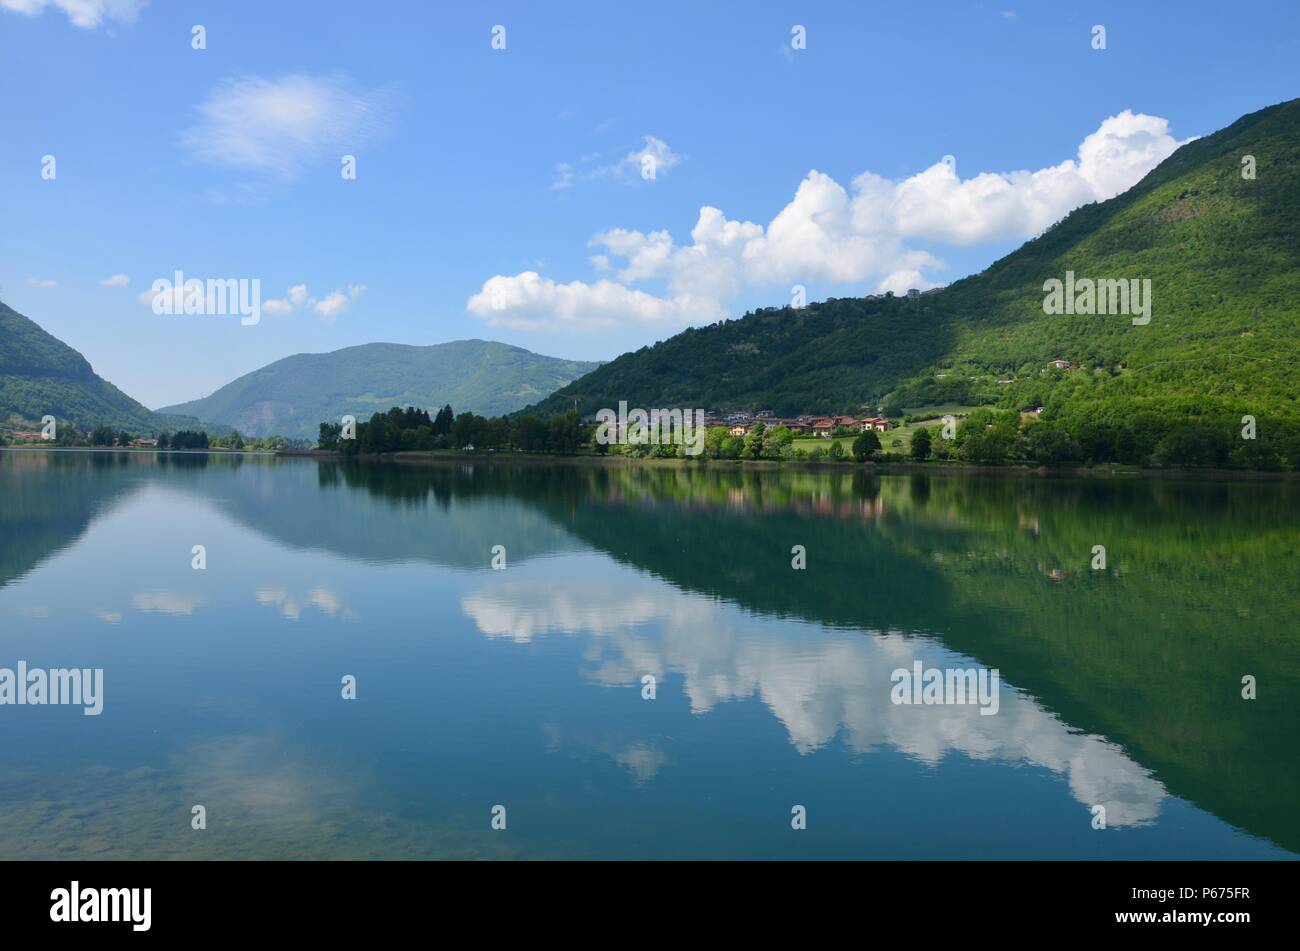 Lago d'Iseo in Lombardy in Italy, sea view, tourism, water surface, lake, summer, blue sky, boat rides, clouds, hills, climbing, hiking trails, sun - Stock Image